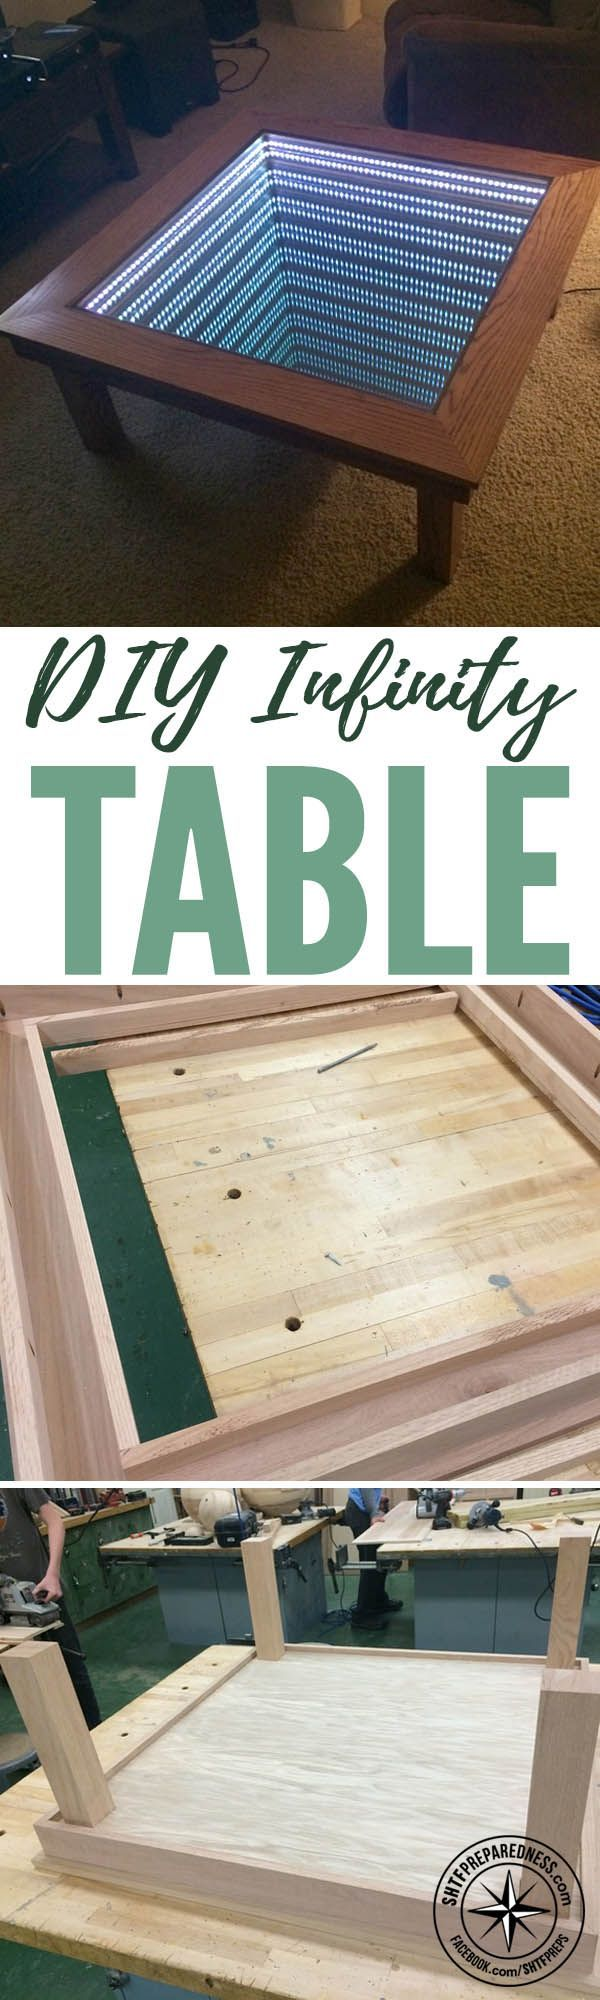 DIY Infinity Table u2014 DIY woodworking projects